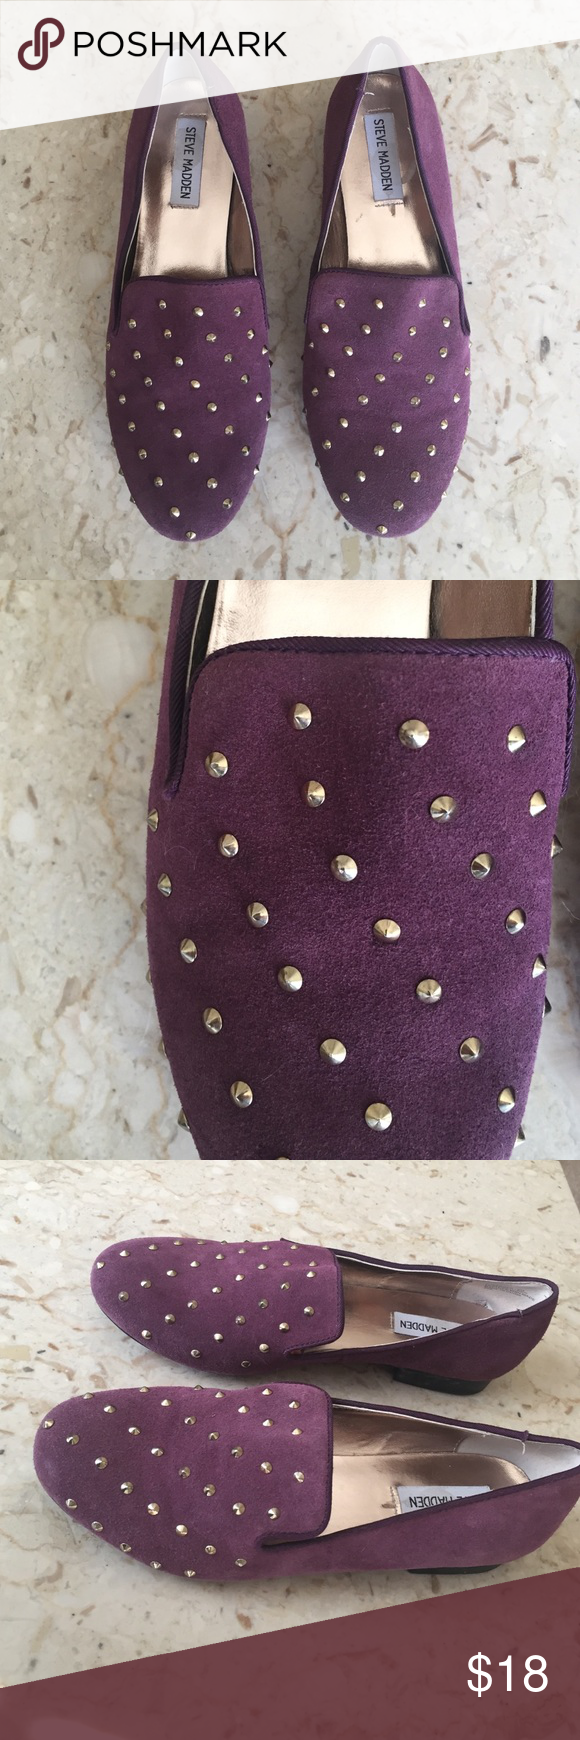 Purple Studded Steve Madden Flats Great condition! Steve Madden purple leather flats and studded detail. Priced to sell! Make an offer! 15% off 3 item bundle. Steve Madden Shoes Flats & Loafers